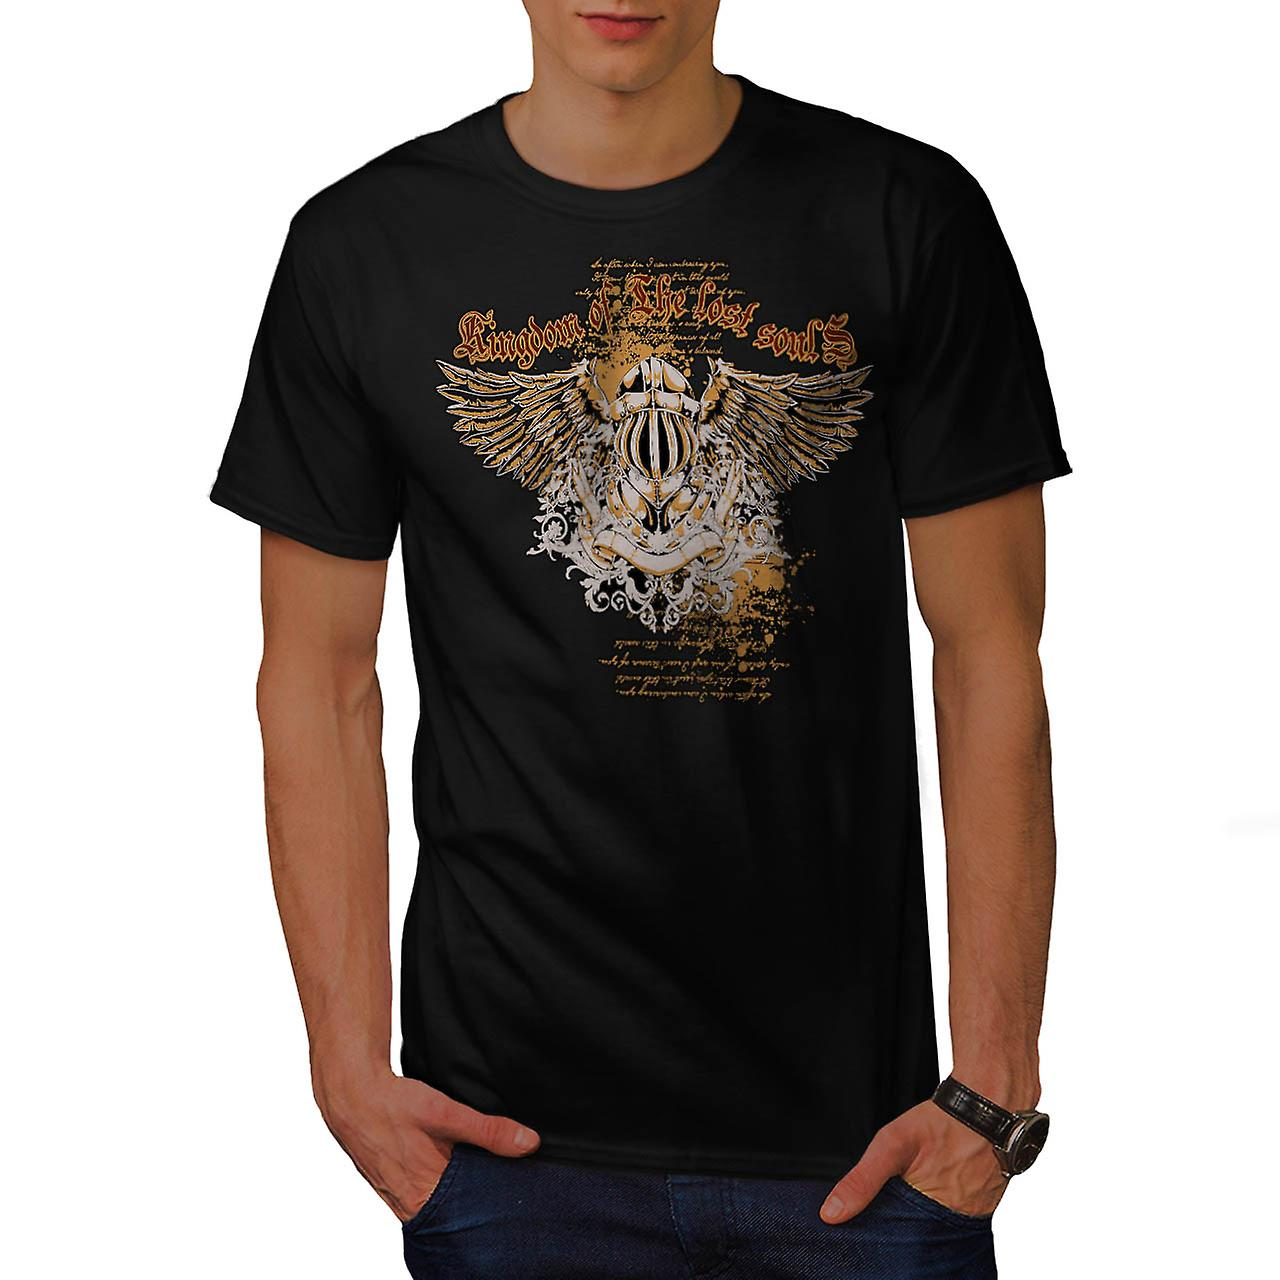 Kingdom Lost Soul Fashion Men Black T-shirt | Wellcoda